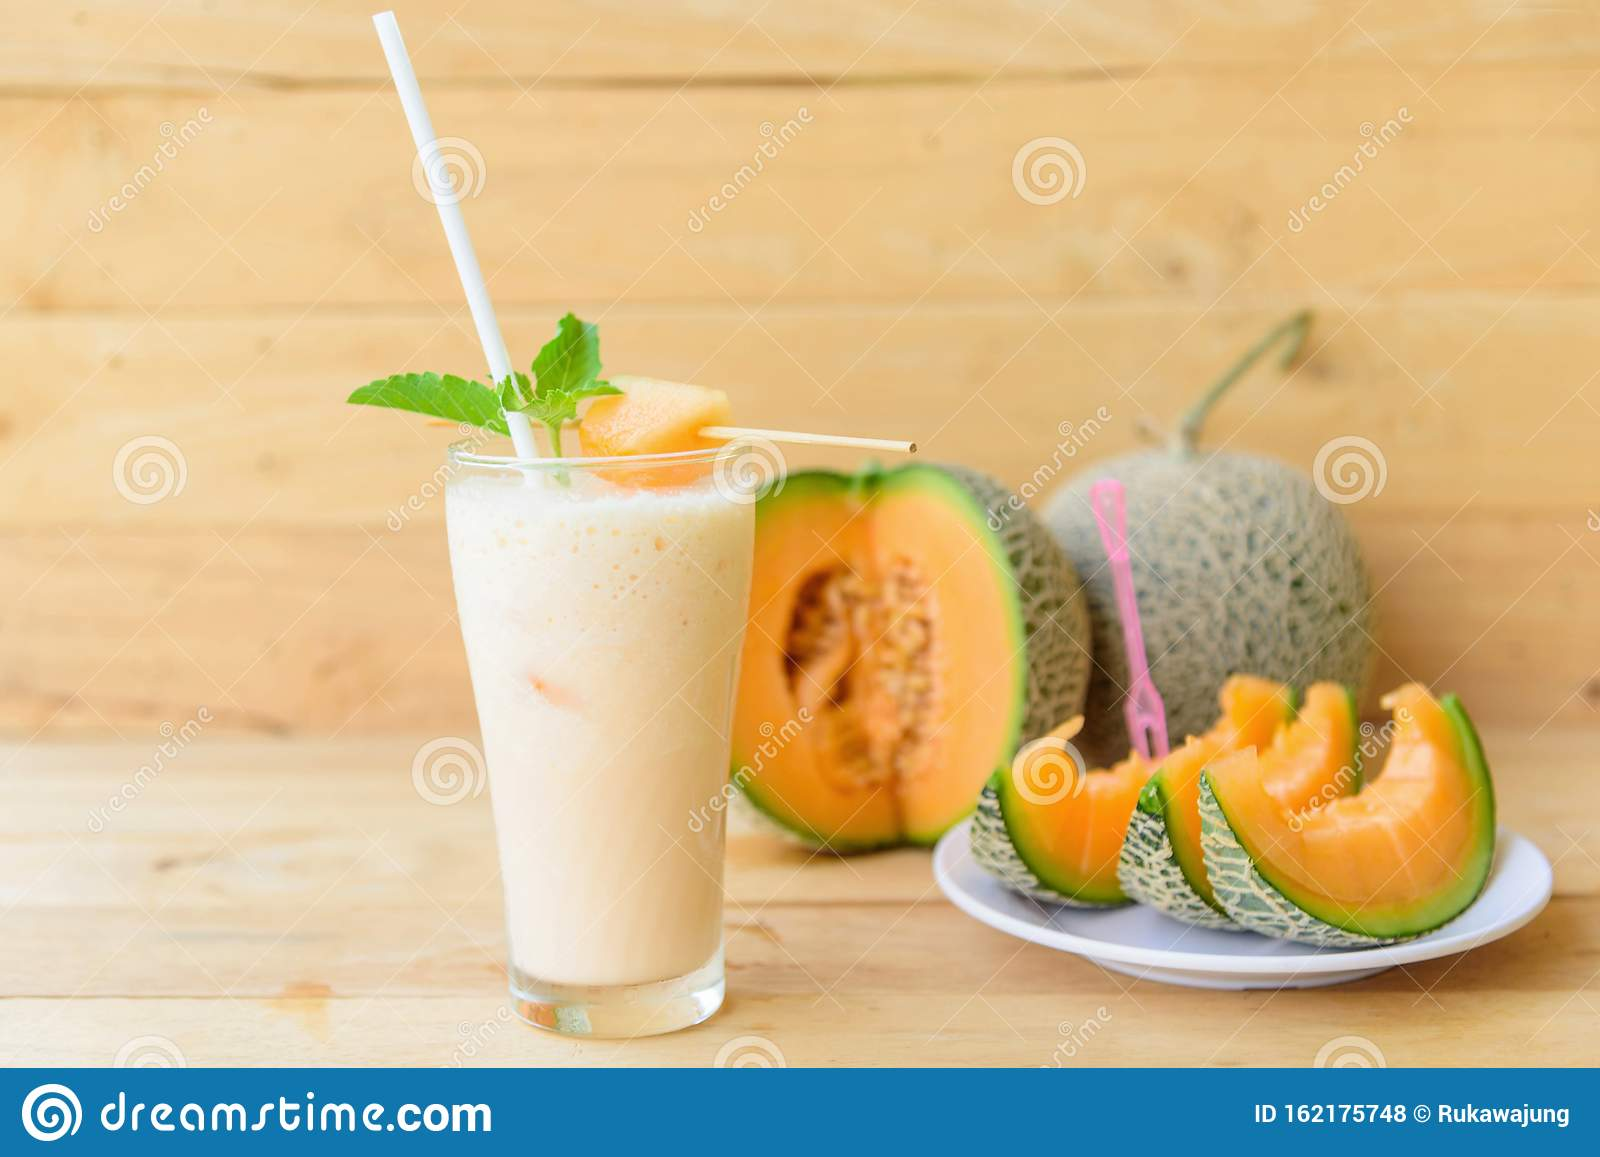 Milk Melon Smoothie In Glass Stock Photo Image Of Green Herb 162175748 Therefore, wash the whole fruit in cold running water thoroughly before consumption. dreamstime com